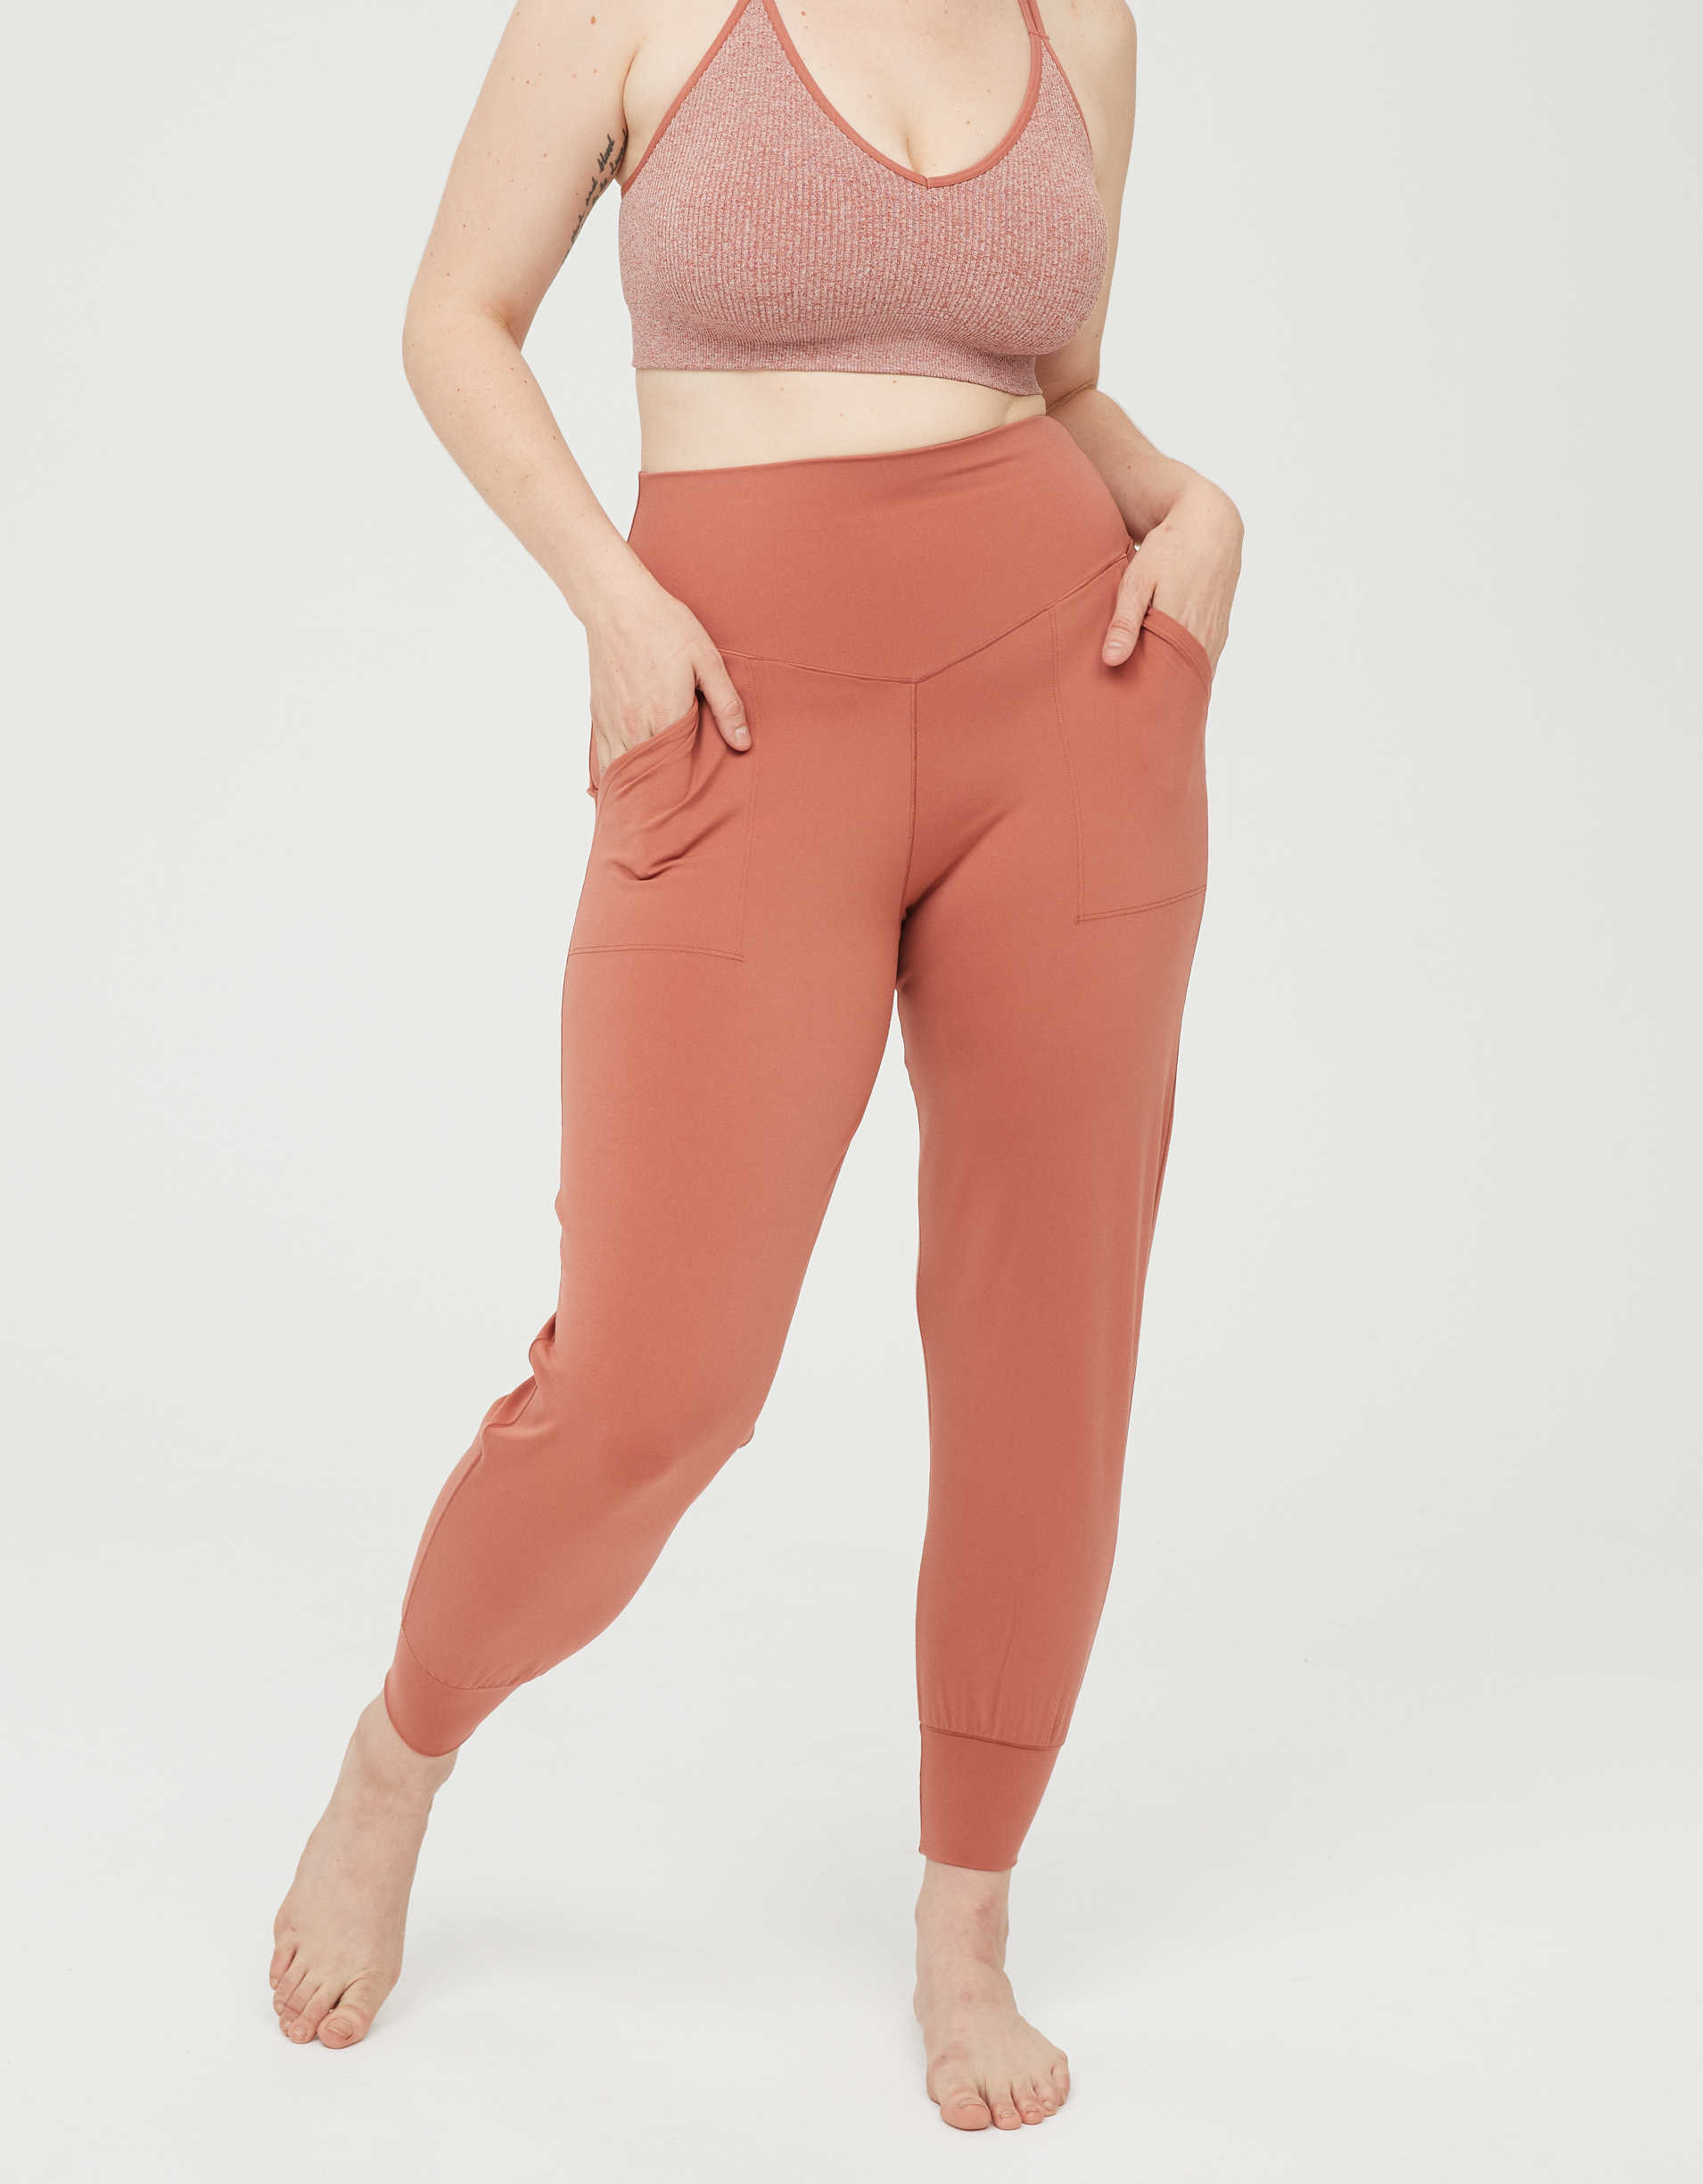 Model wearing the high-waisted joggers with cuffs and two front pockets in orange